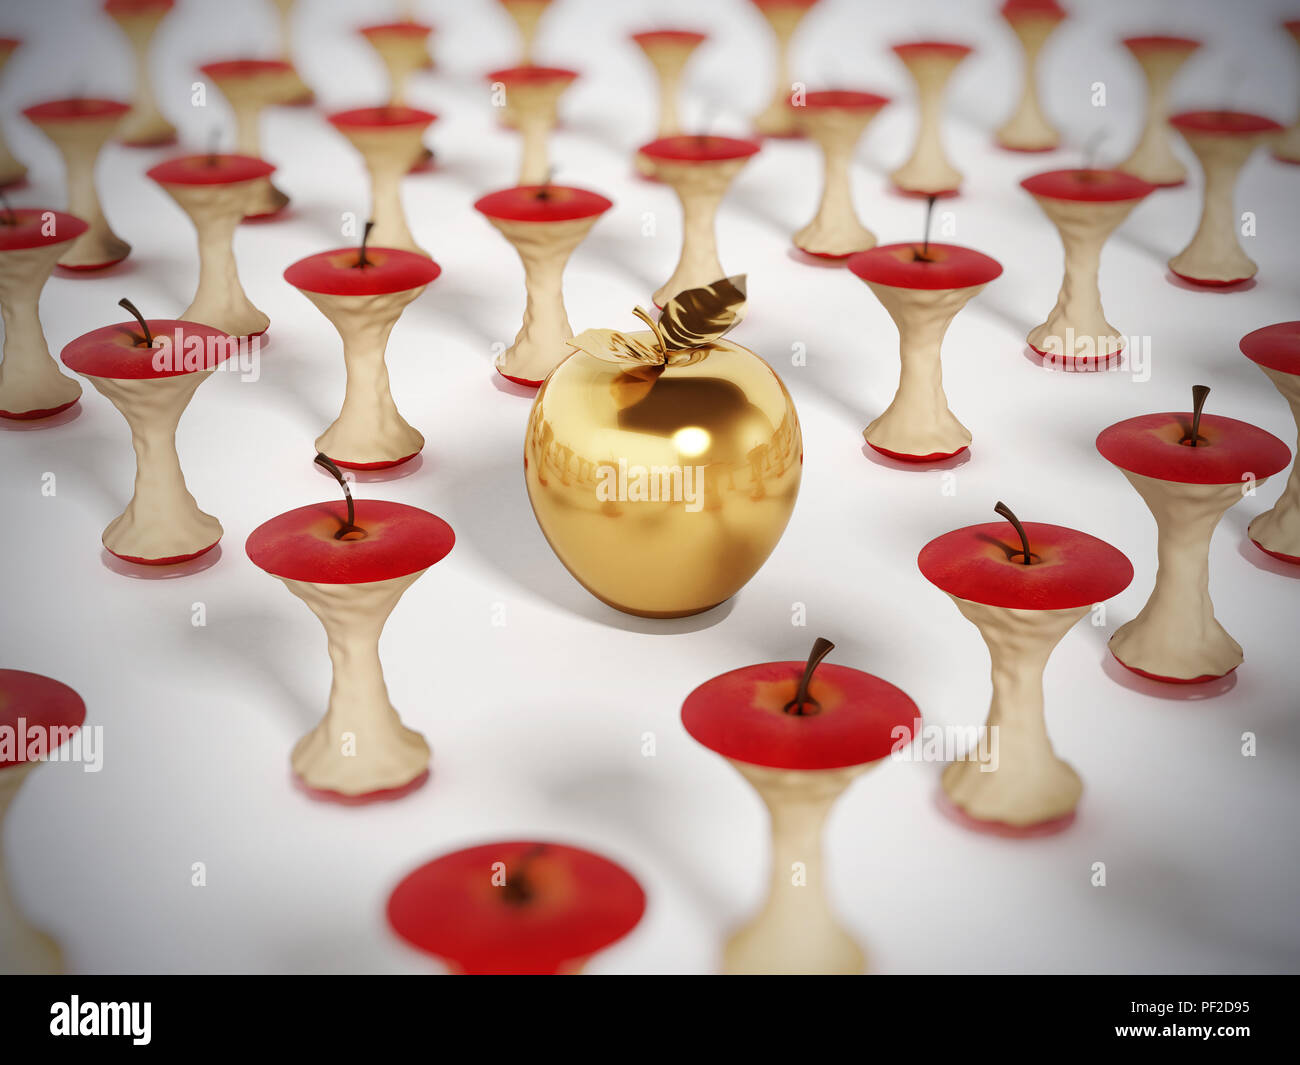 Golden apple standing out among eaten apple cores. 3D illustration. - Stock Image